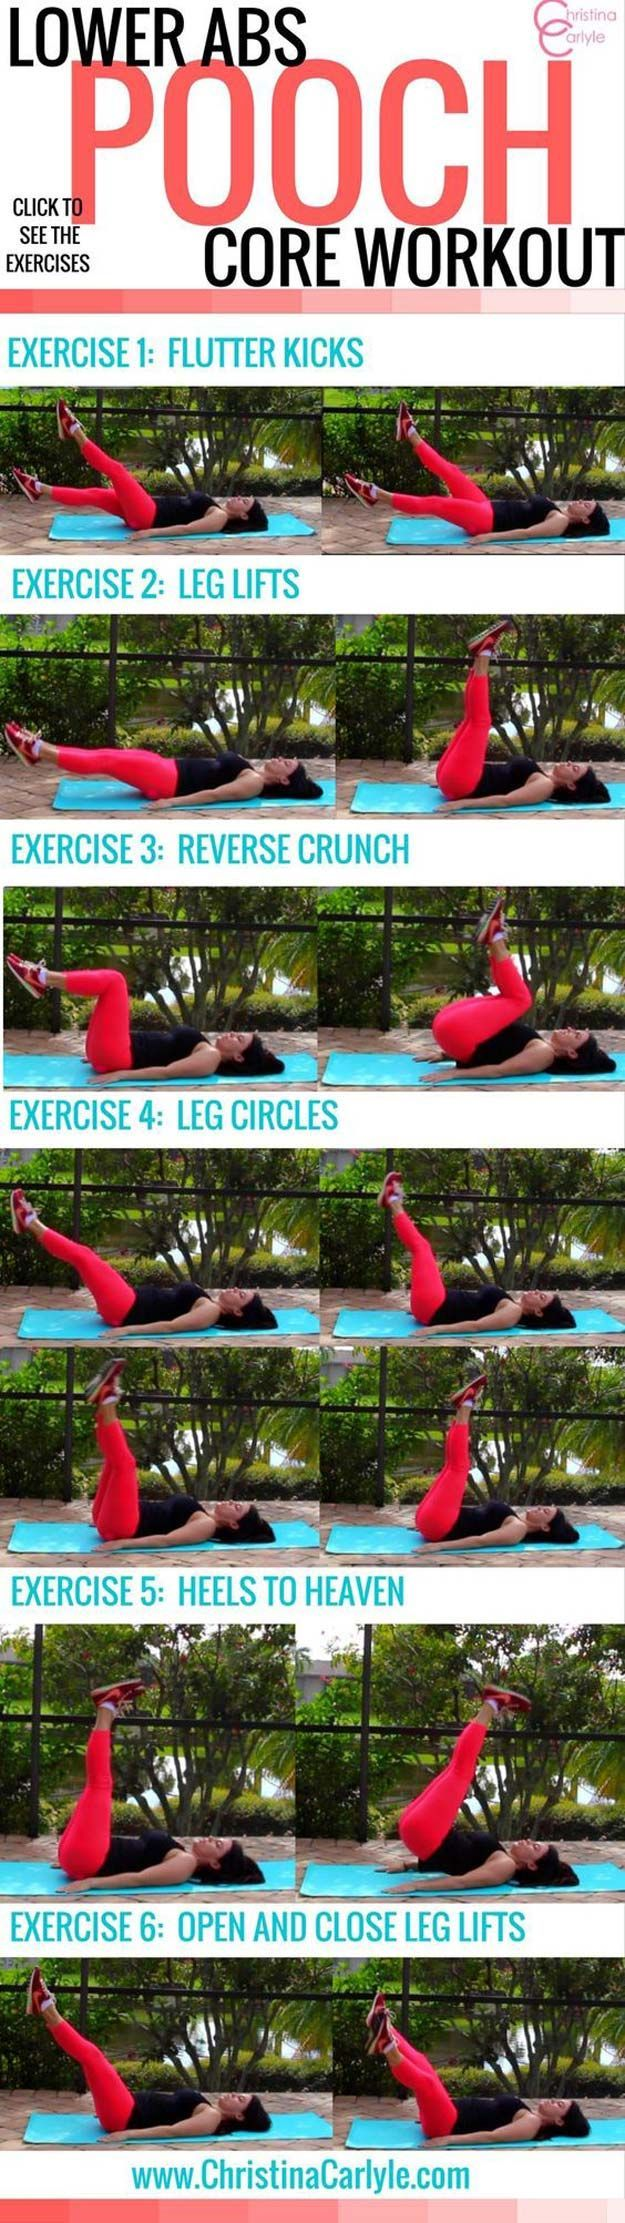 Best Exercises for Abs - Workouts for Women - Lower Ab Exercises - Best Ab Exercises And Ab Workouts For A Flat Stomach, Increased Health Fitness, And Weightless. Ab Exercises For Women, For Men, And For Kids. Great With A Diet To Help With Losing Weight From The Lower Belly, Getting Rid Of That Muffin Top, And Increasing Muscle To Refine Your Stomach And Hip Shape. Fat Burners And Calorie Burners For A Flat Belly, Six Pack Abs, And Summer Beach Body. Crunches And More…